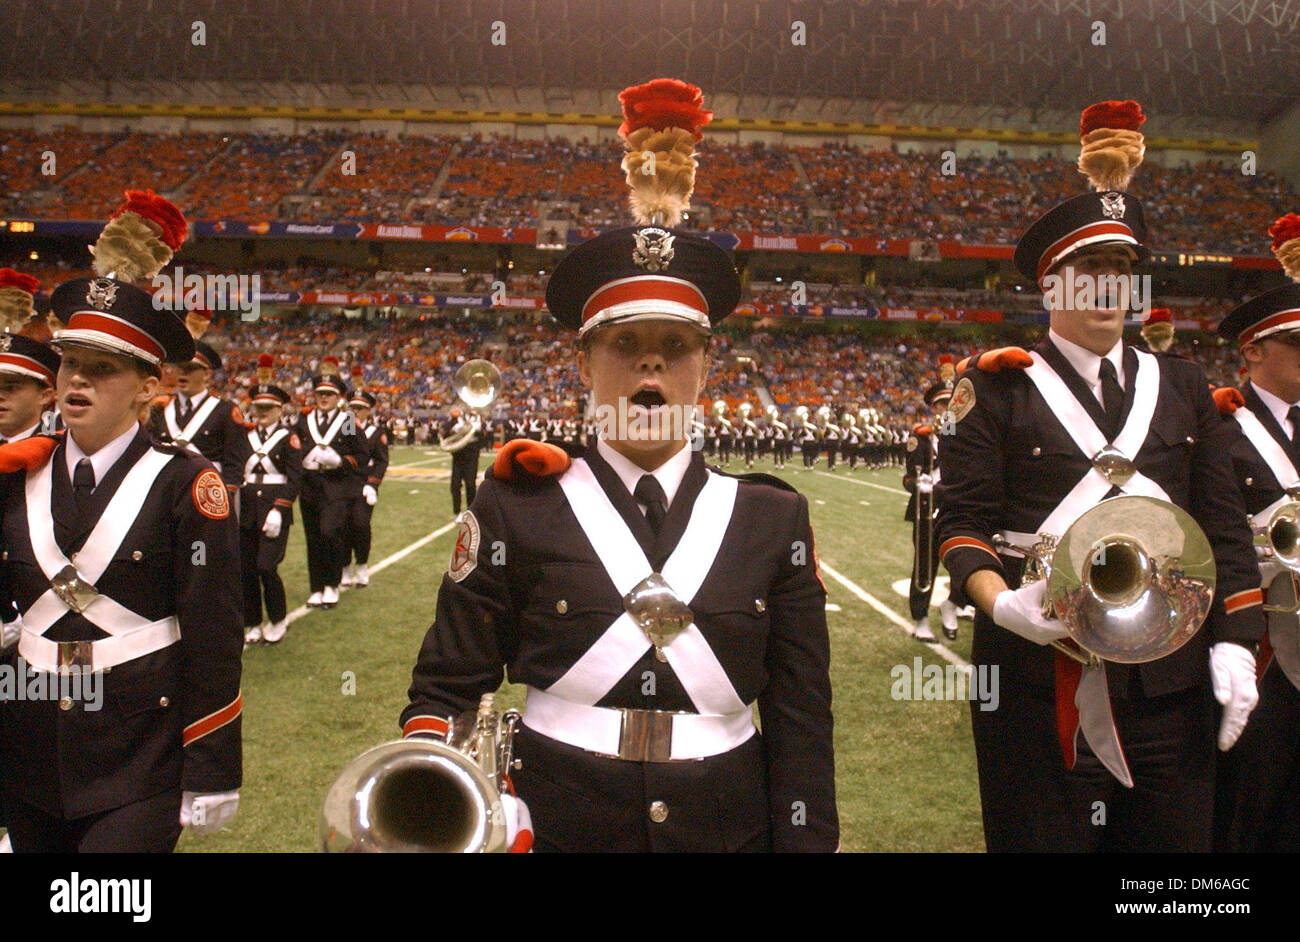 Dec 29, 2004; San Antonio, TX, USA; NCAA Football - Ohio State's band members sings their fight song with the other band members before the start of the 2004 MasterCard Alamo Bowl at the Alamo dome in San Antonio. - Stock Image